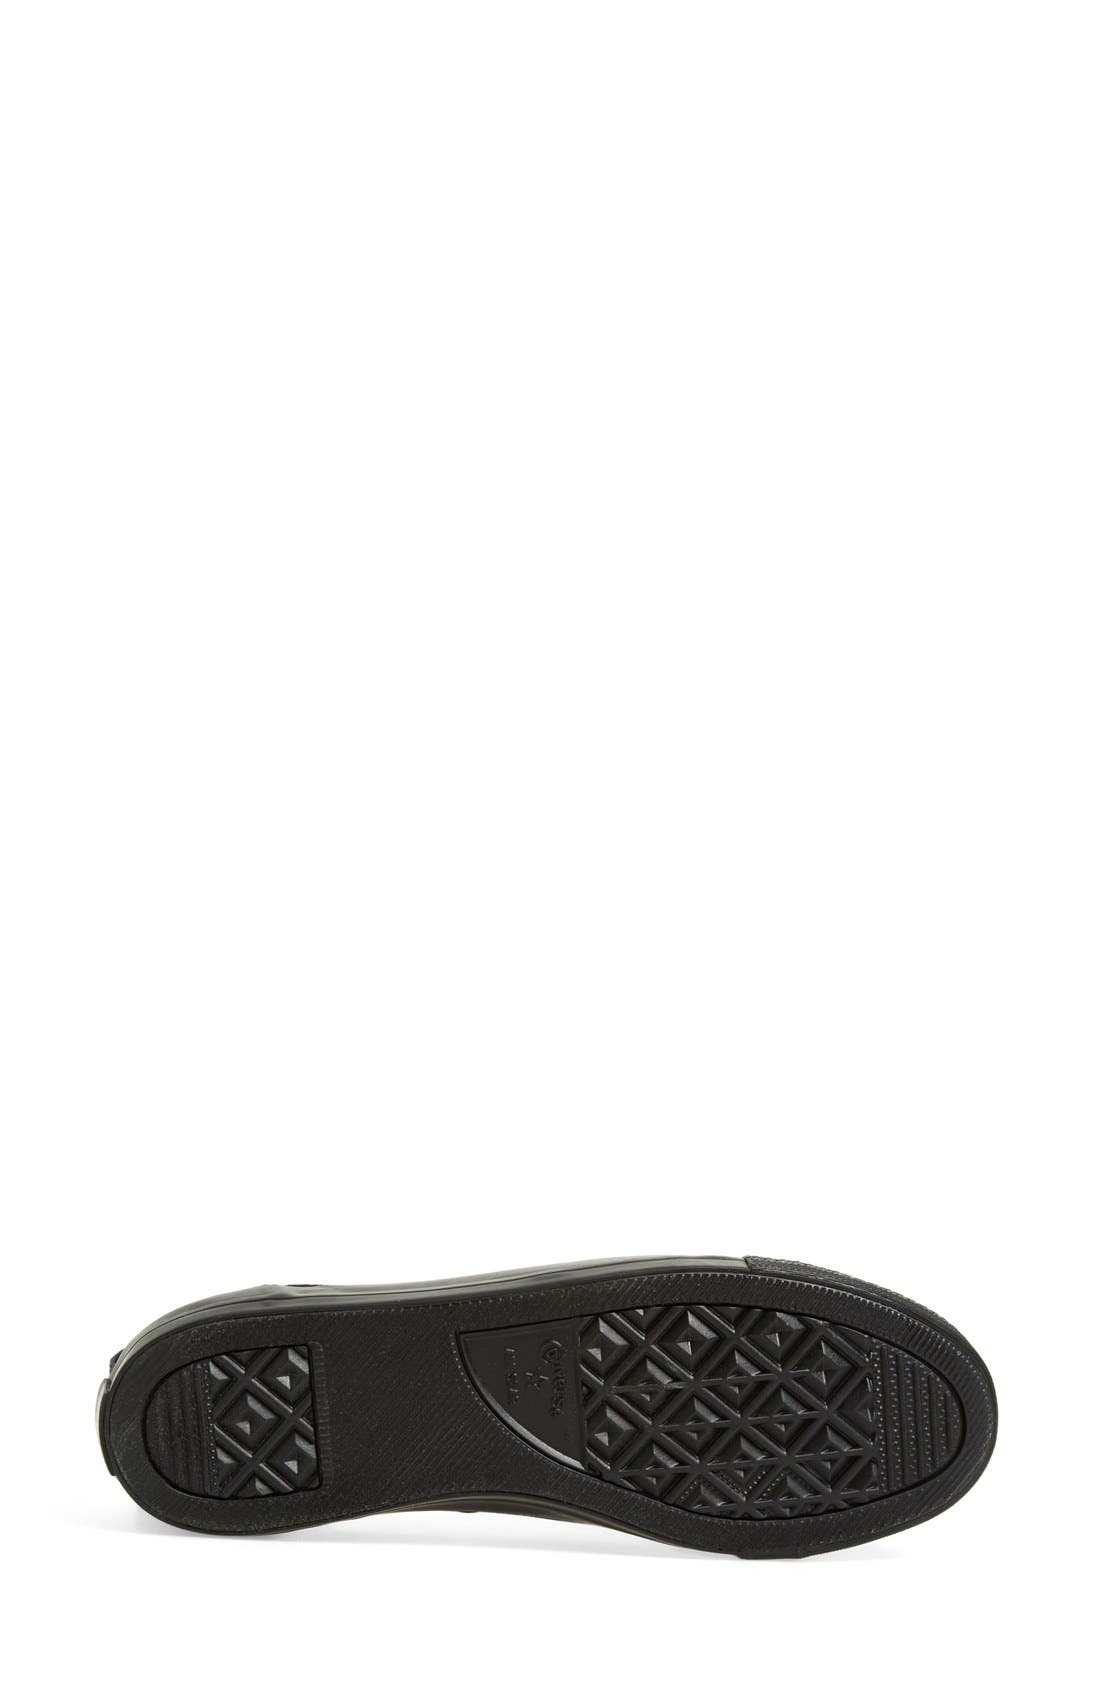 ,                             Chuck Taylor<sup>®</sup> All Star<sup>®</sup> Ballet Canvas Sneaker,                             Alternate thumbnail 9, color,                             005